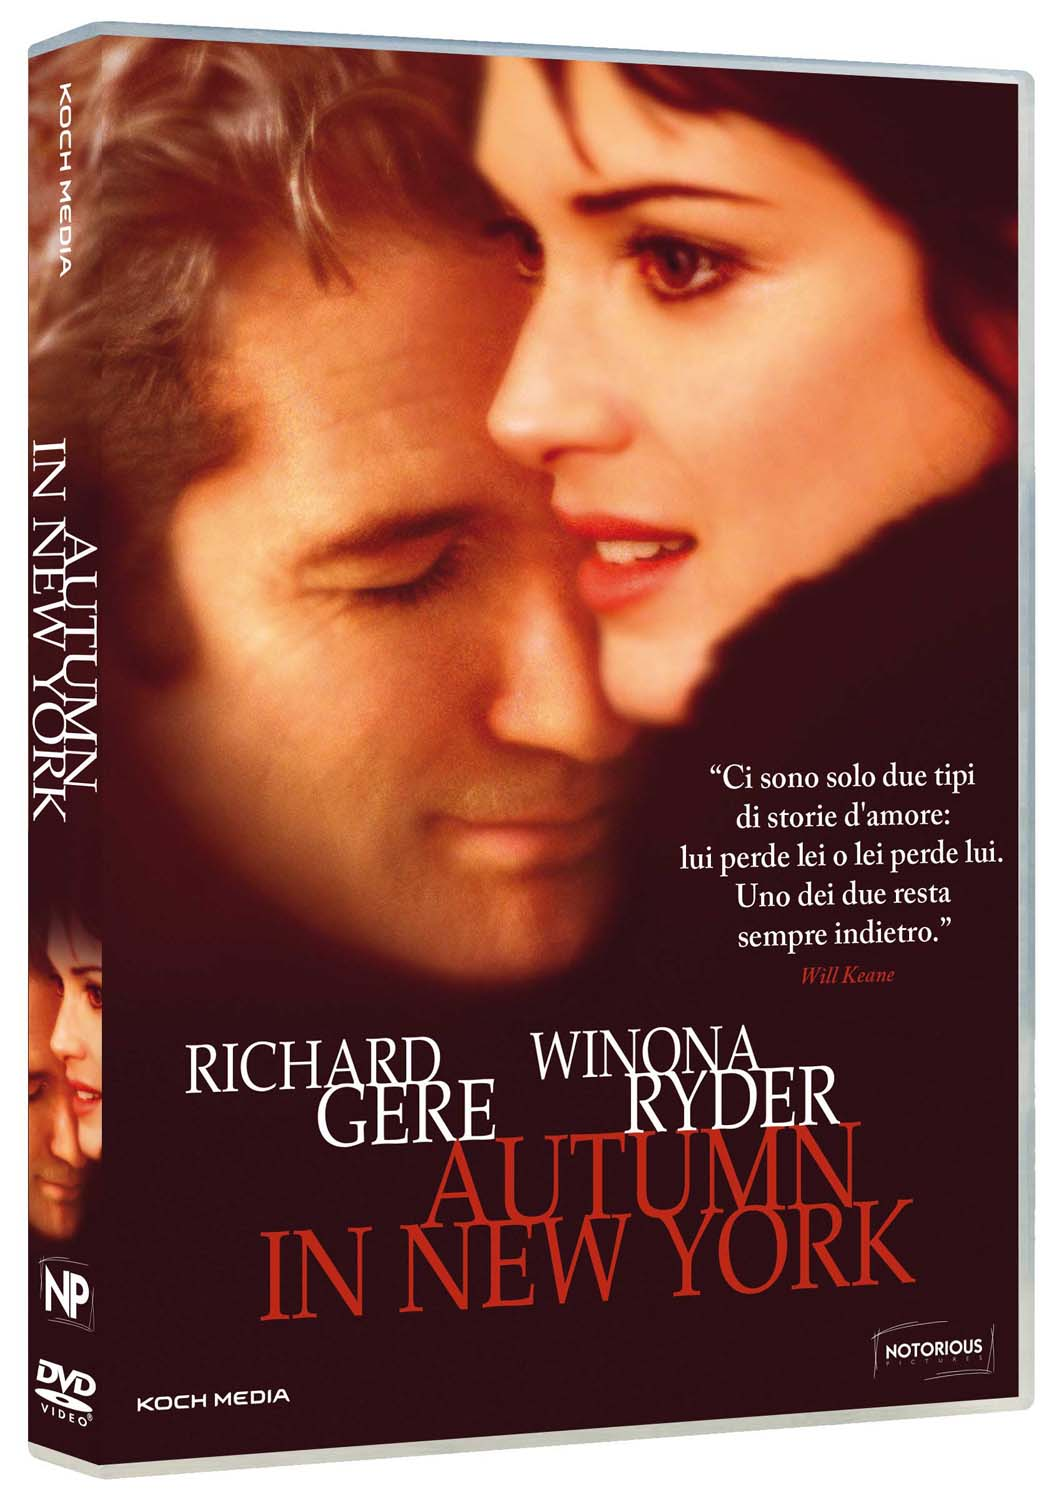 AUTUMN IN NEW YORK (DVD)